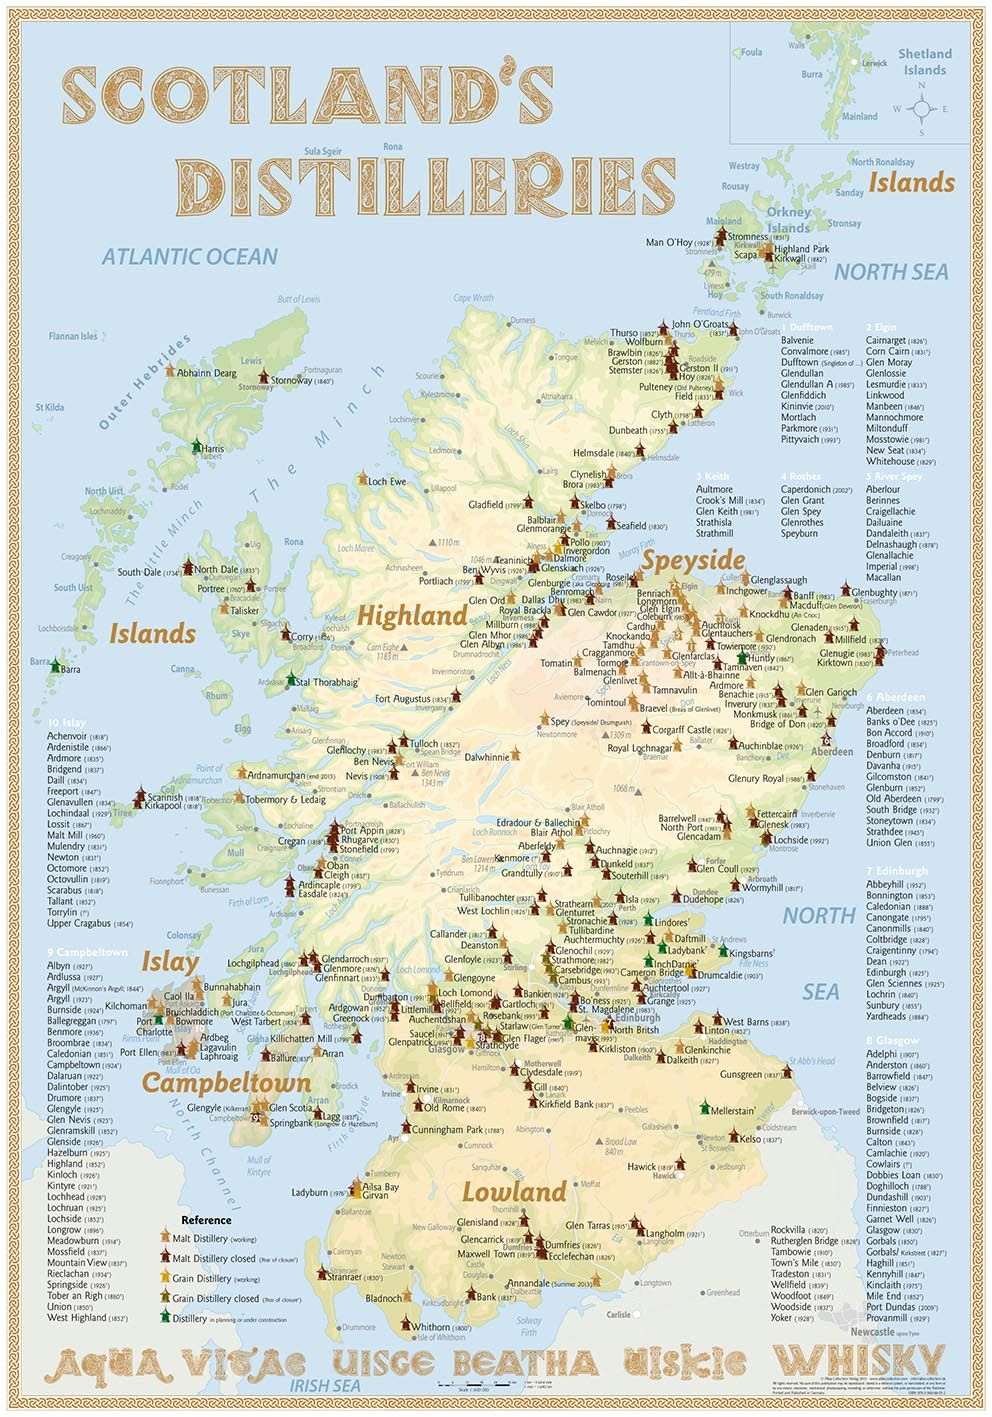 Scotland's Distilleries Map (3rd Edition · 2013 · Poster) with all on